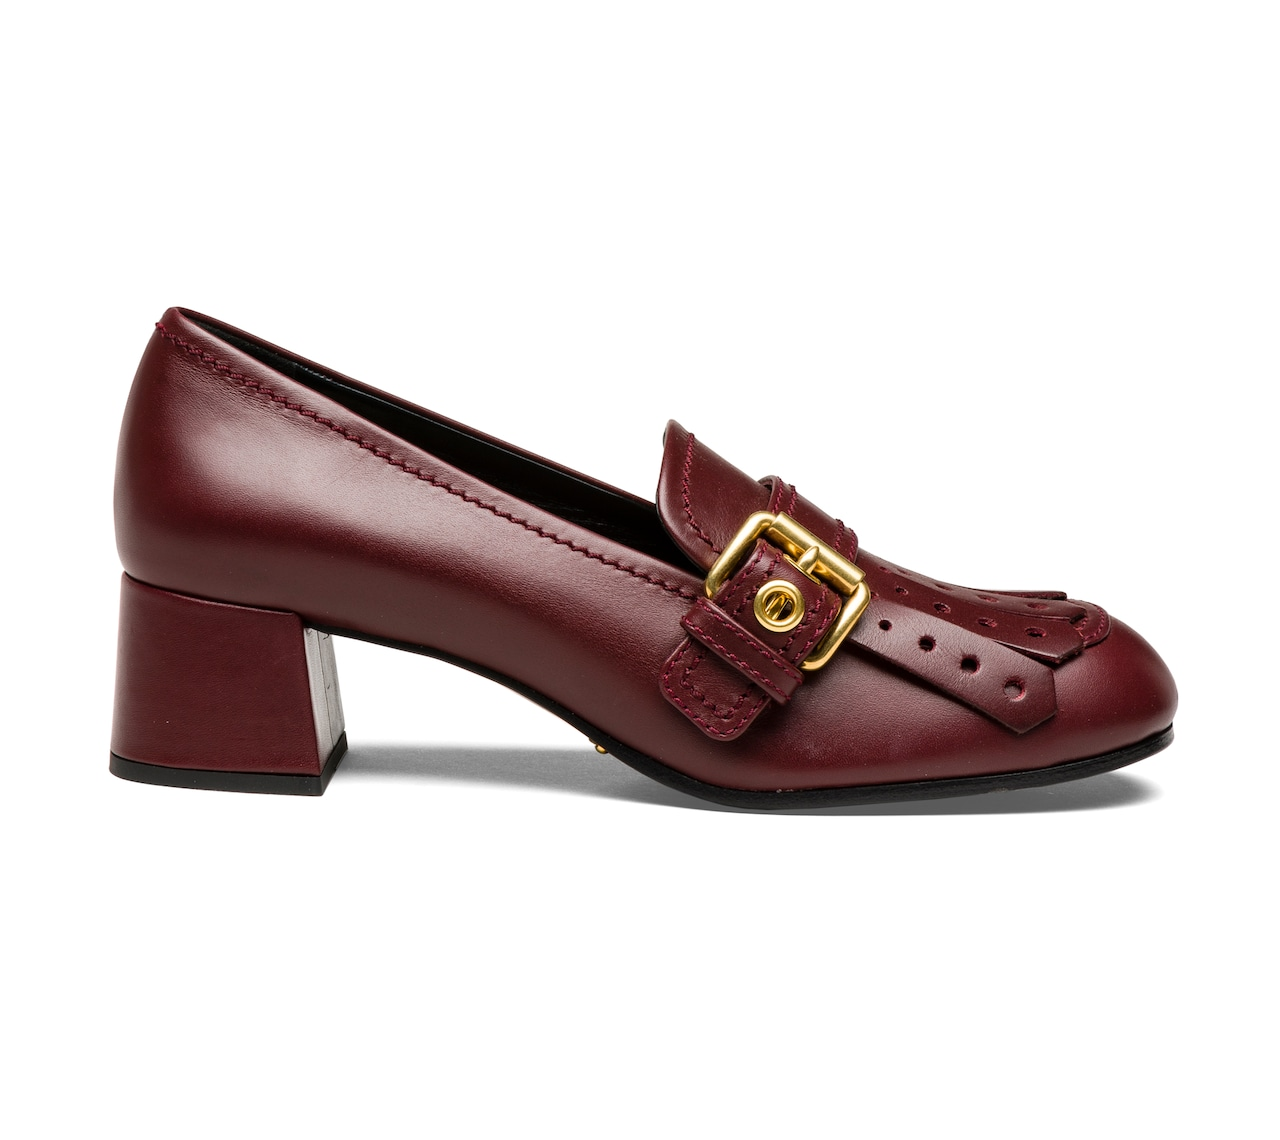 MOCASSINS CALF LEATHER BURGUNDY